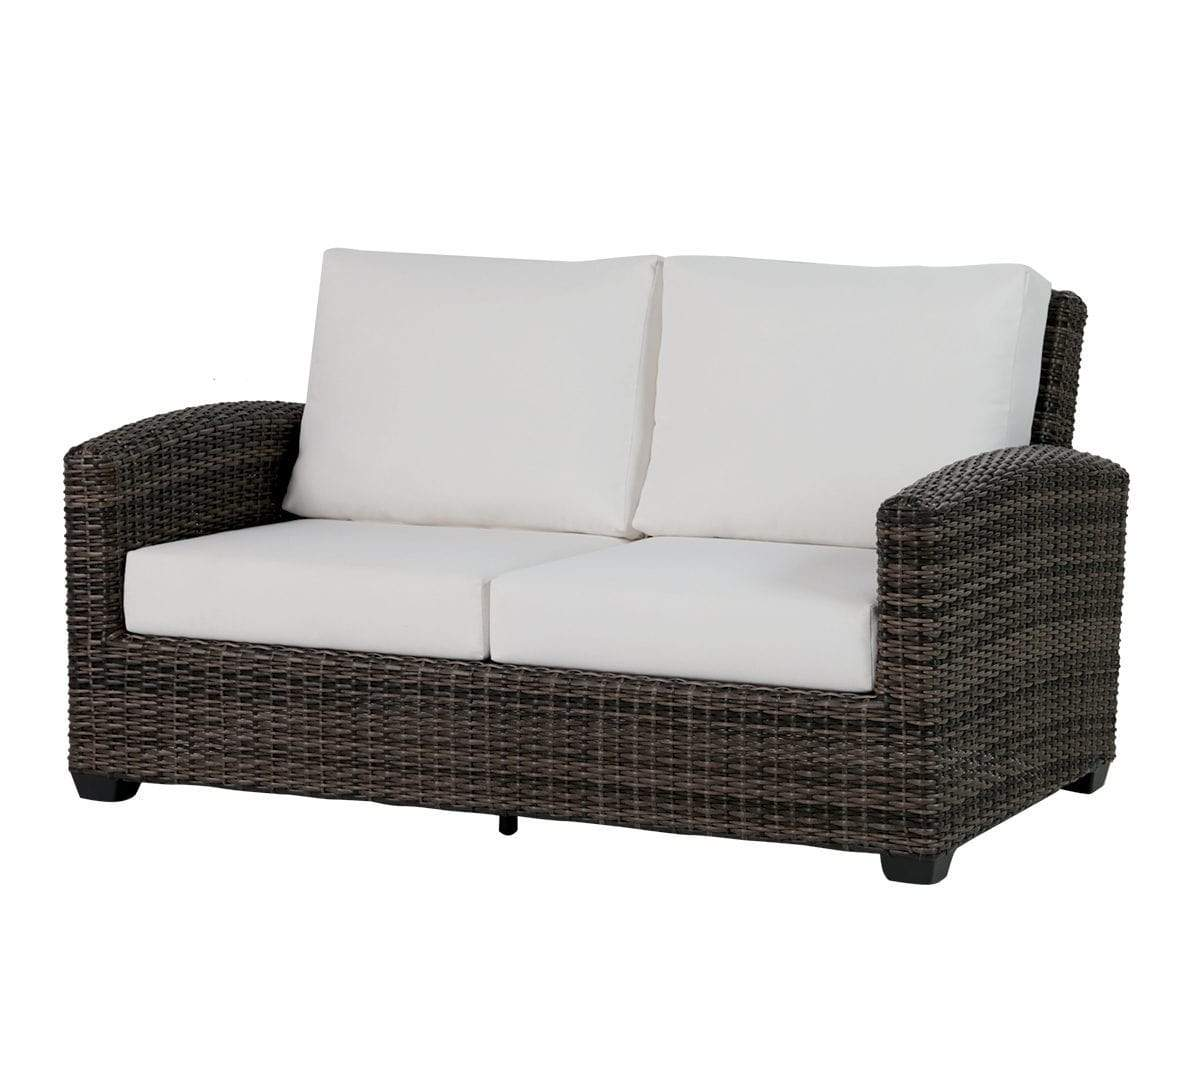 Ratana wicker Coral Gables Loveseat